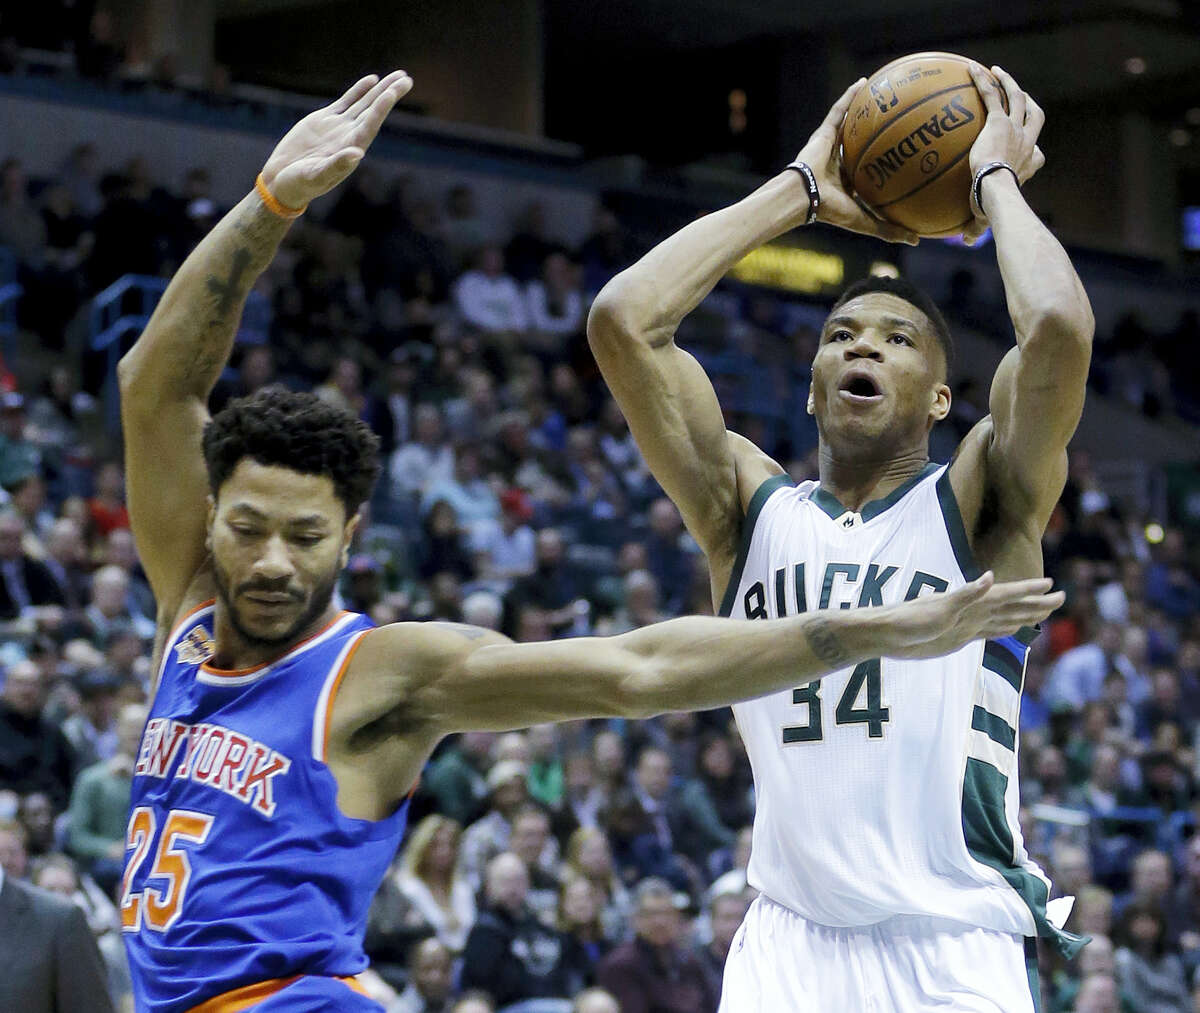 Milwaukee Bucks' Giannis Antetokounmpo (34) drives past New York Knicks' Derrick Rose (25) during the second half of an NBA basketball game March 8, 2017 in Milwaukee.